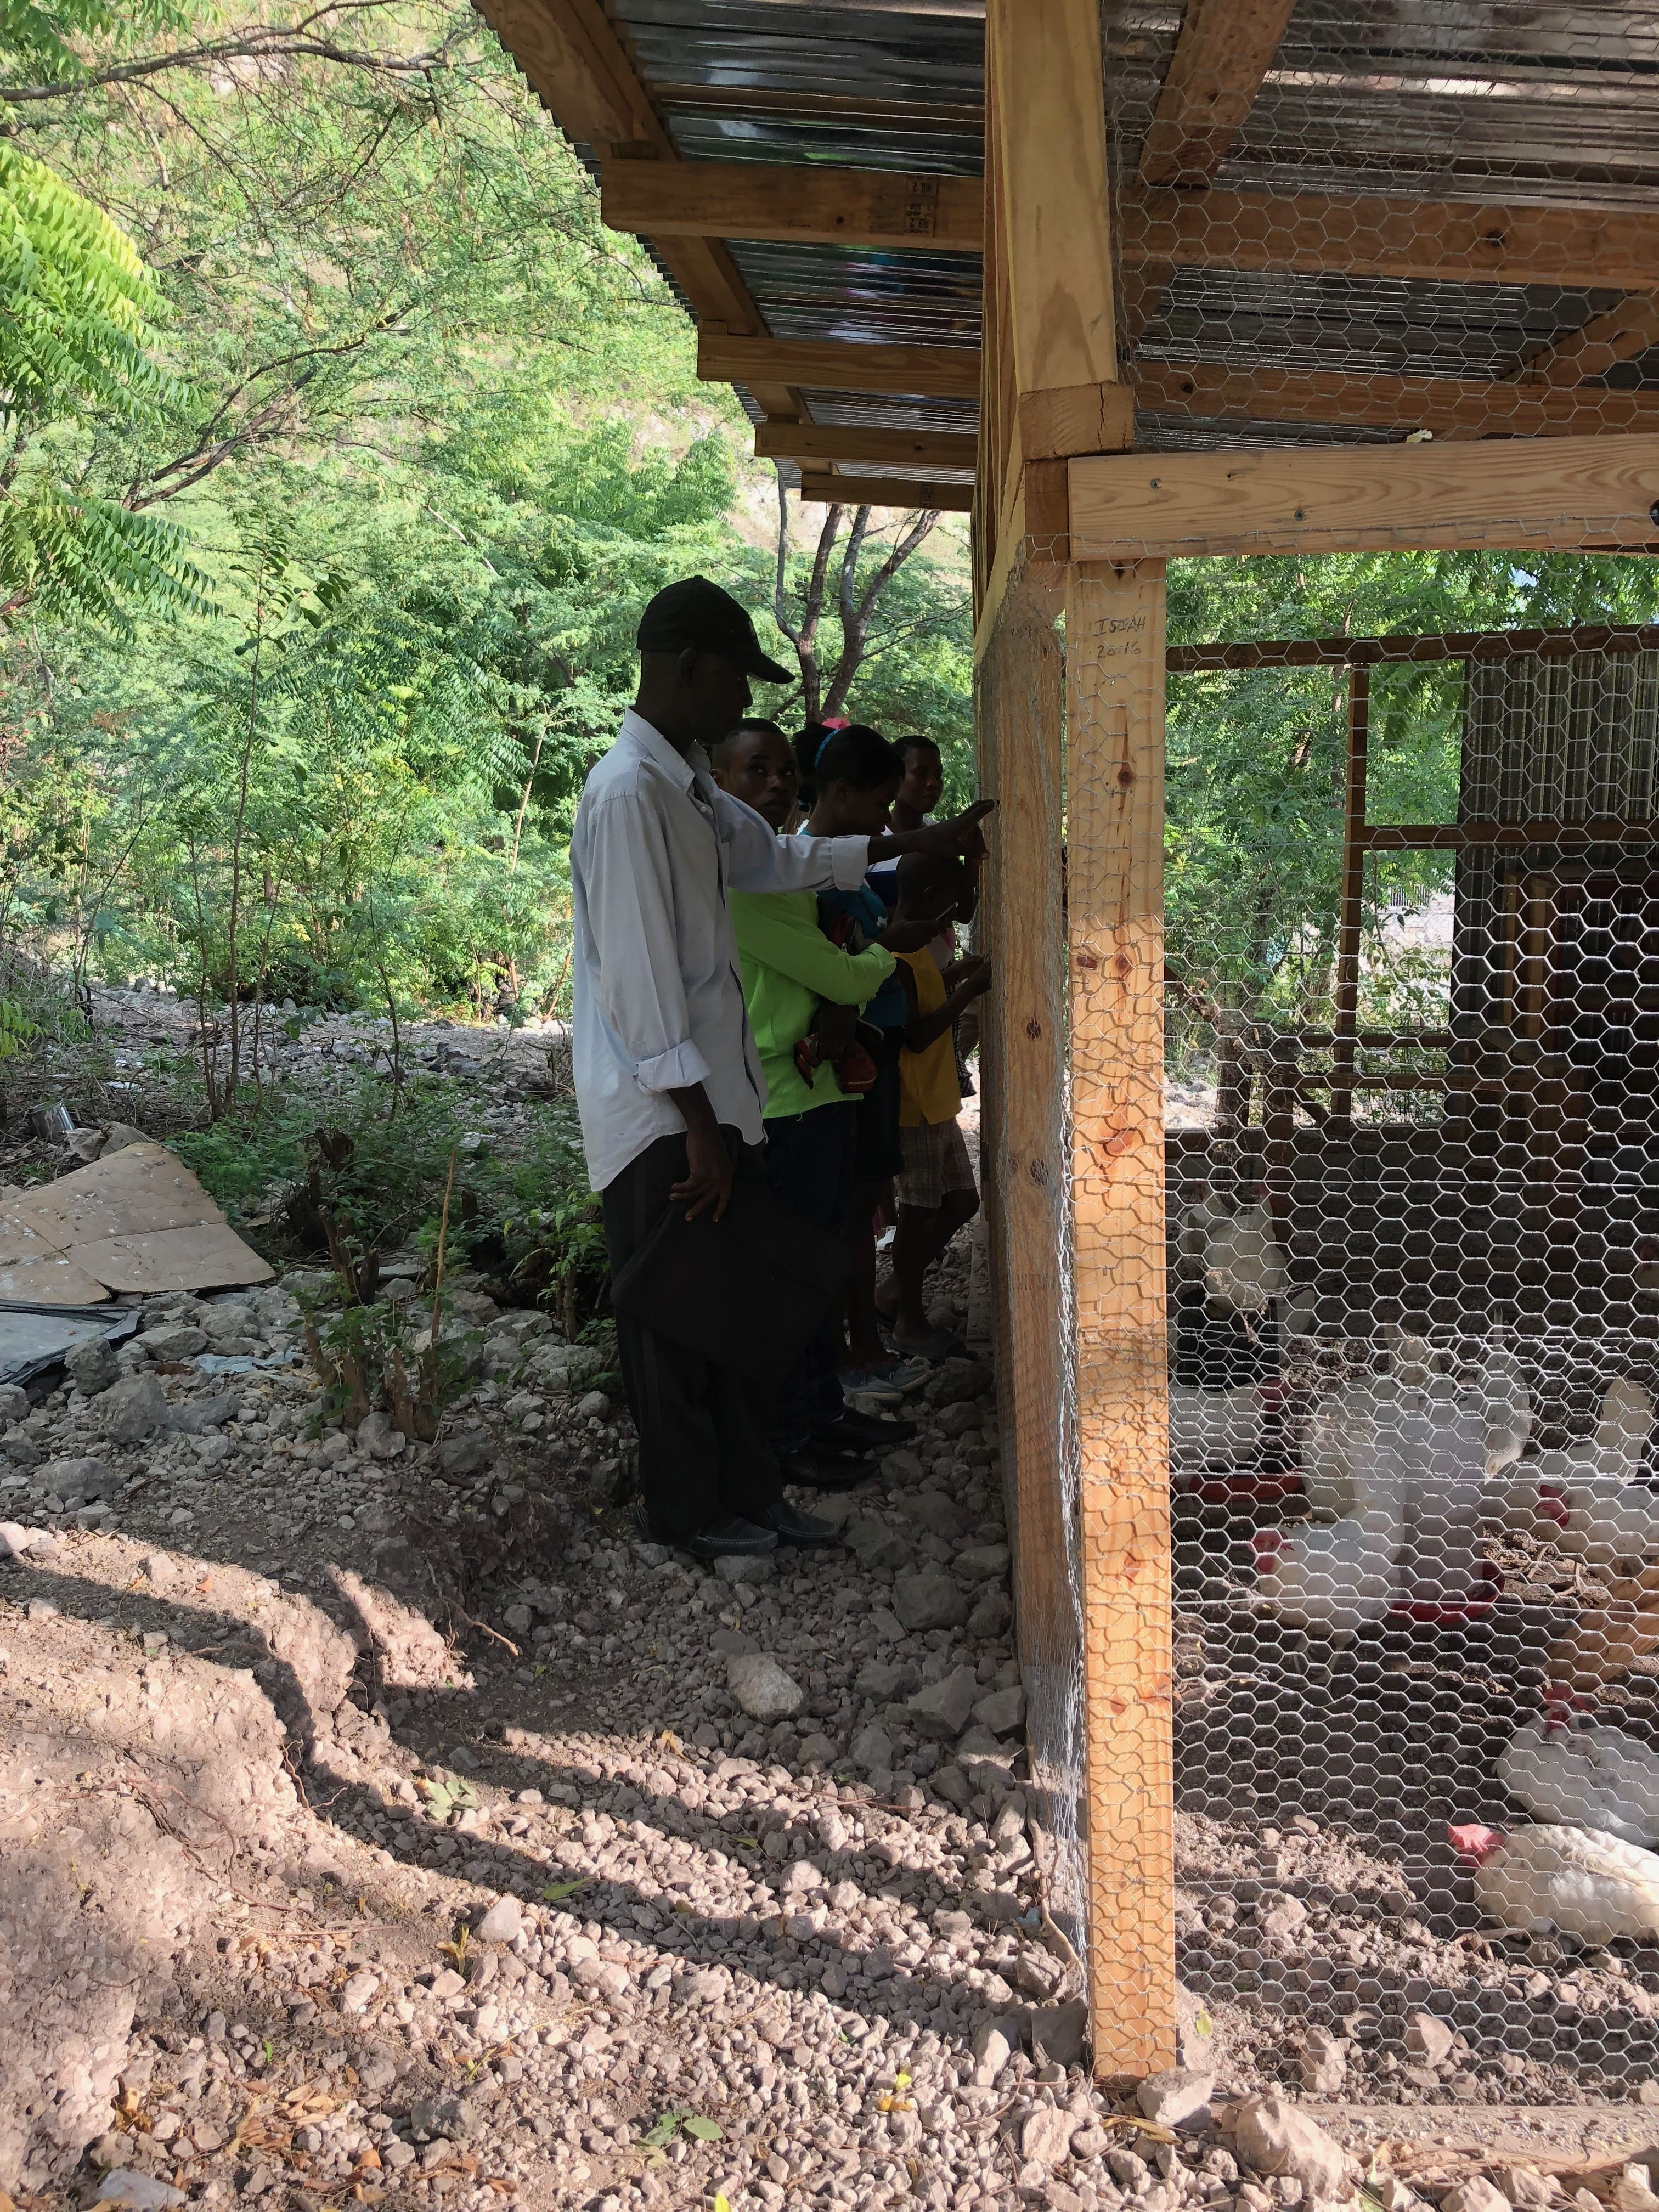 Our little trip to the chicken coop to see an example of job creation